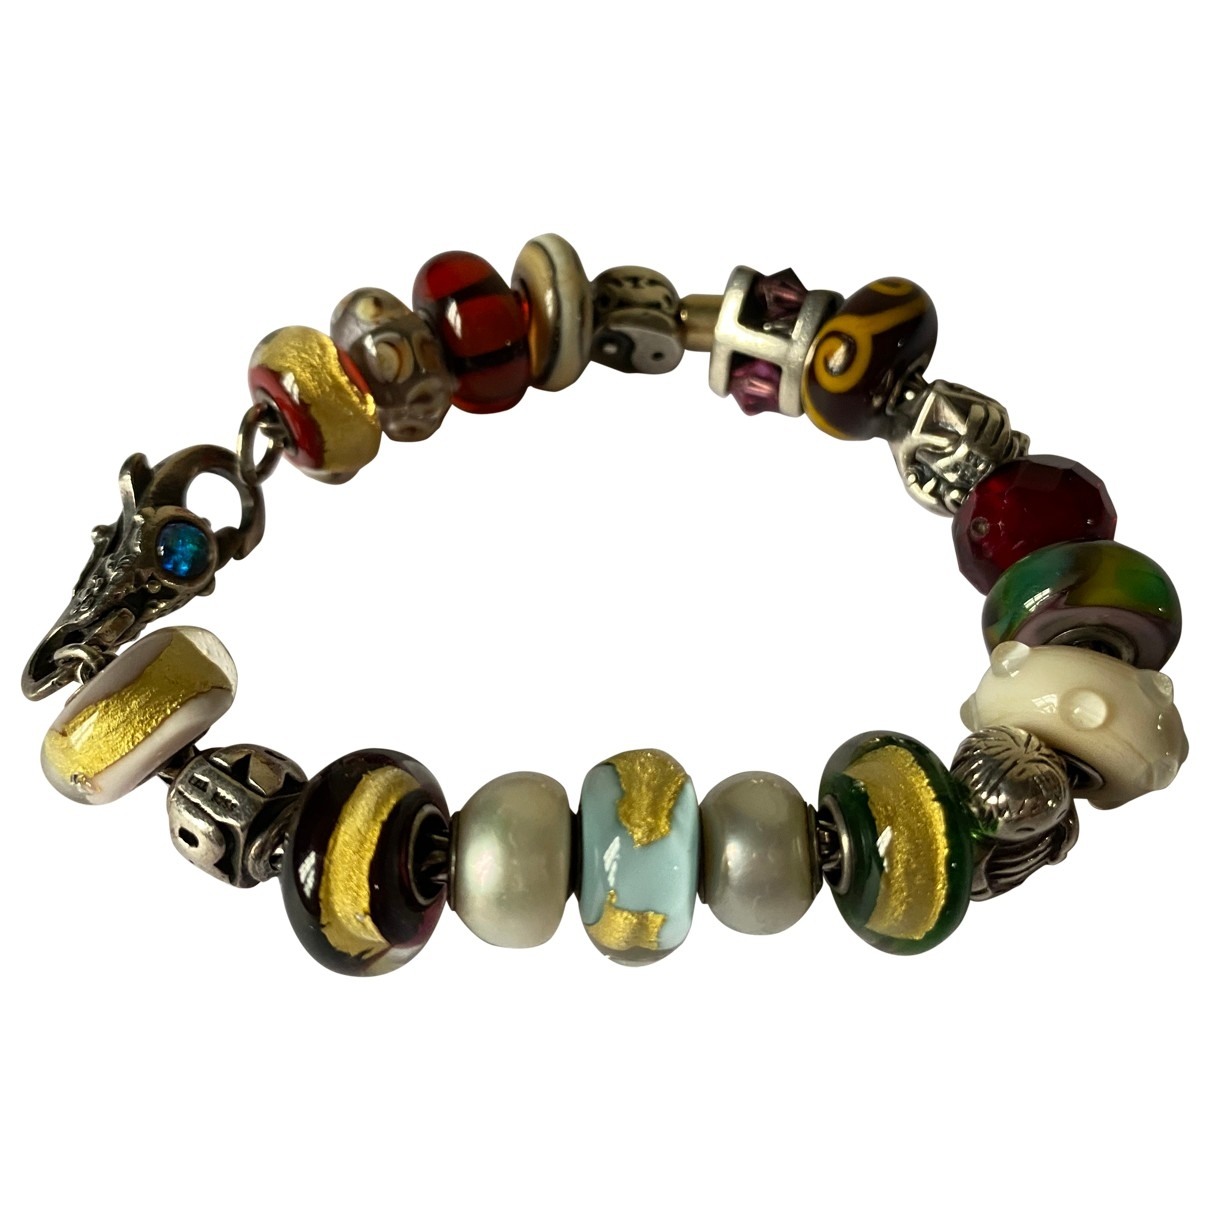 Non Signe / Unsigned Motifs Ethniques Armband in  Bunt Silber